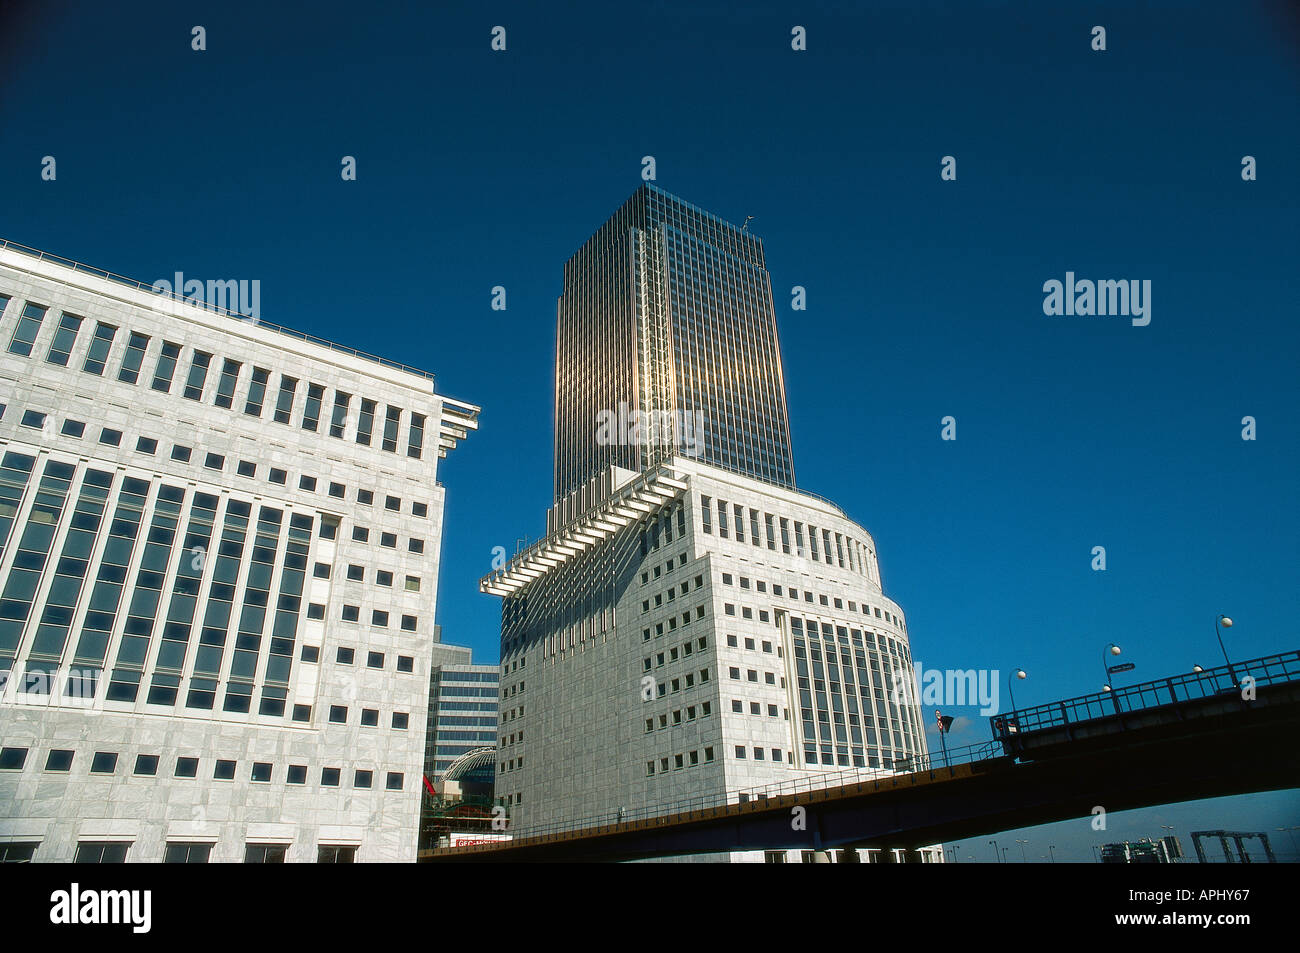 Modern buildings which house offices in city s Docklands developed in 1980s Canary Wharf tower Isle of Dogs London England - Stock Image